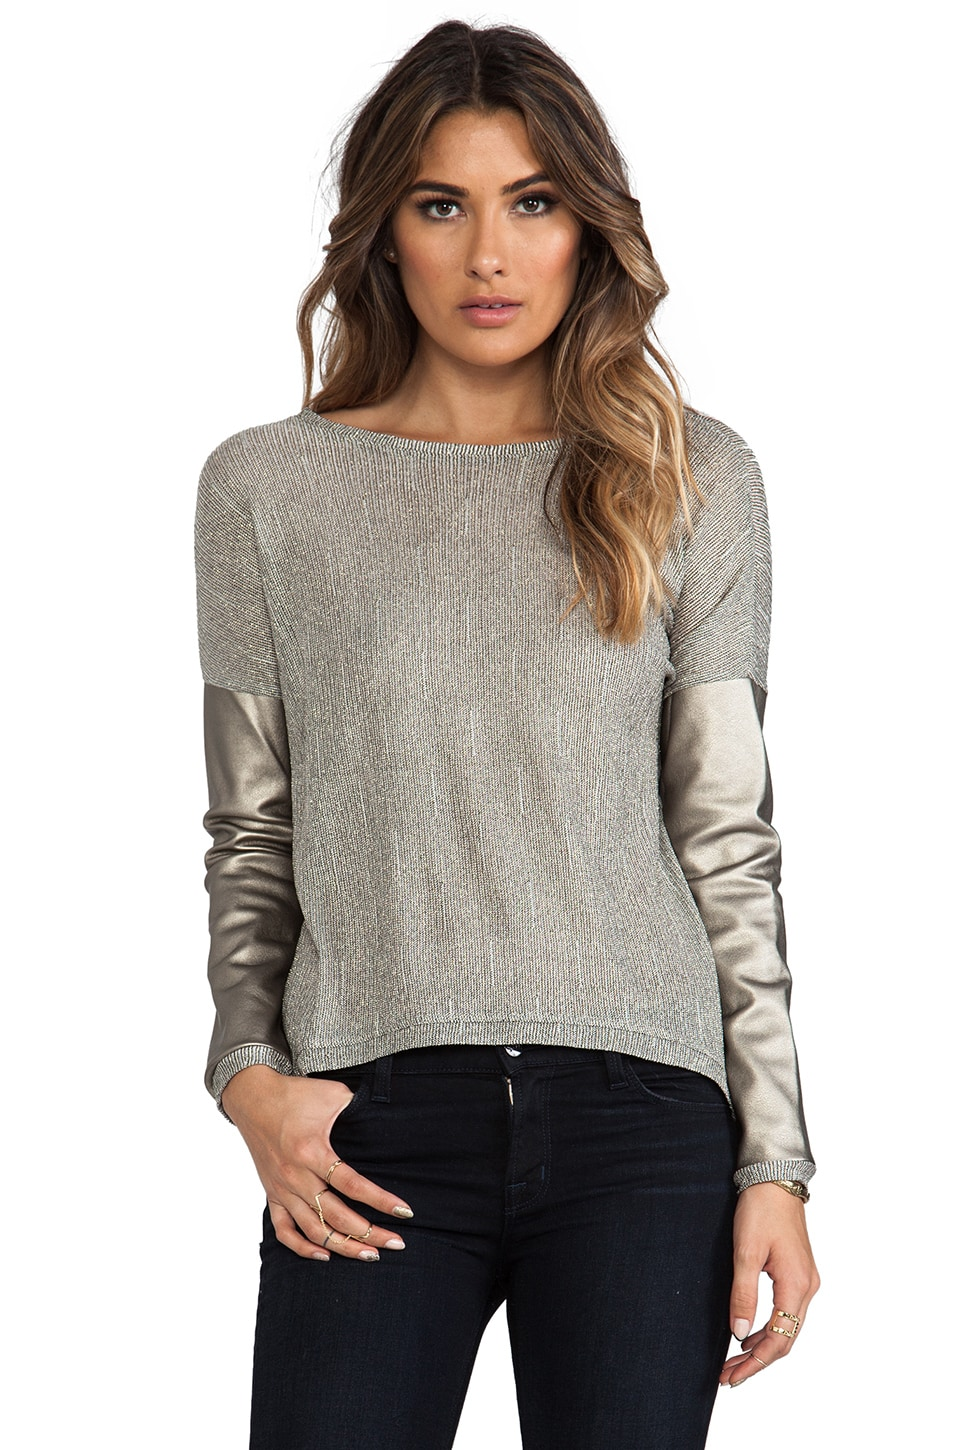 Generation Love Bobo Metallic Long Sleeve Top in Gold